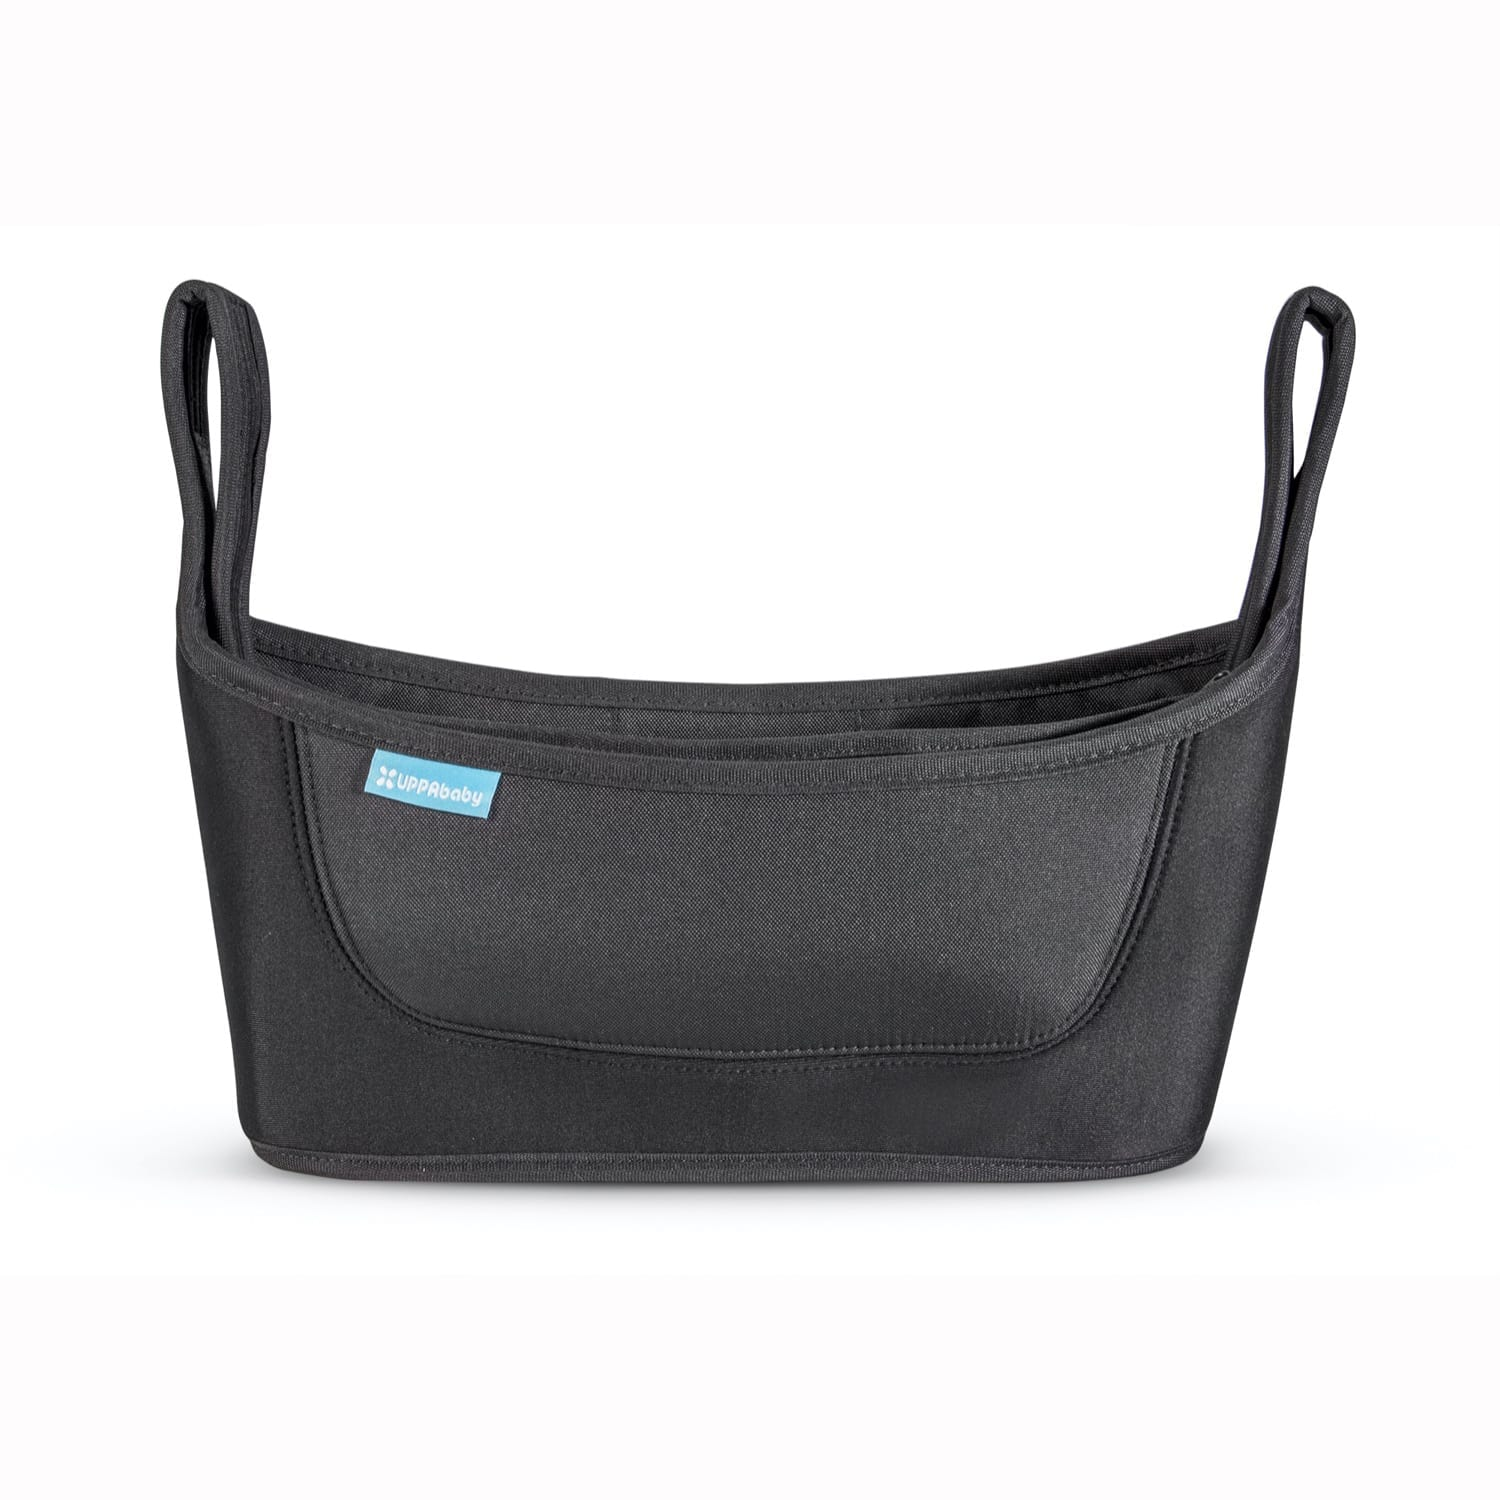 UPPAbaby Carry-All Parent Organizer product image